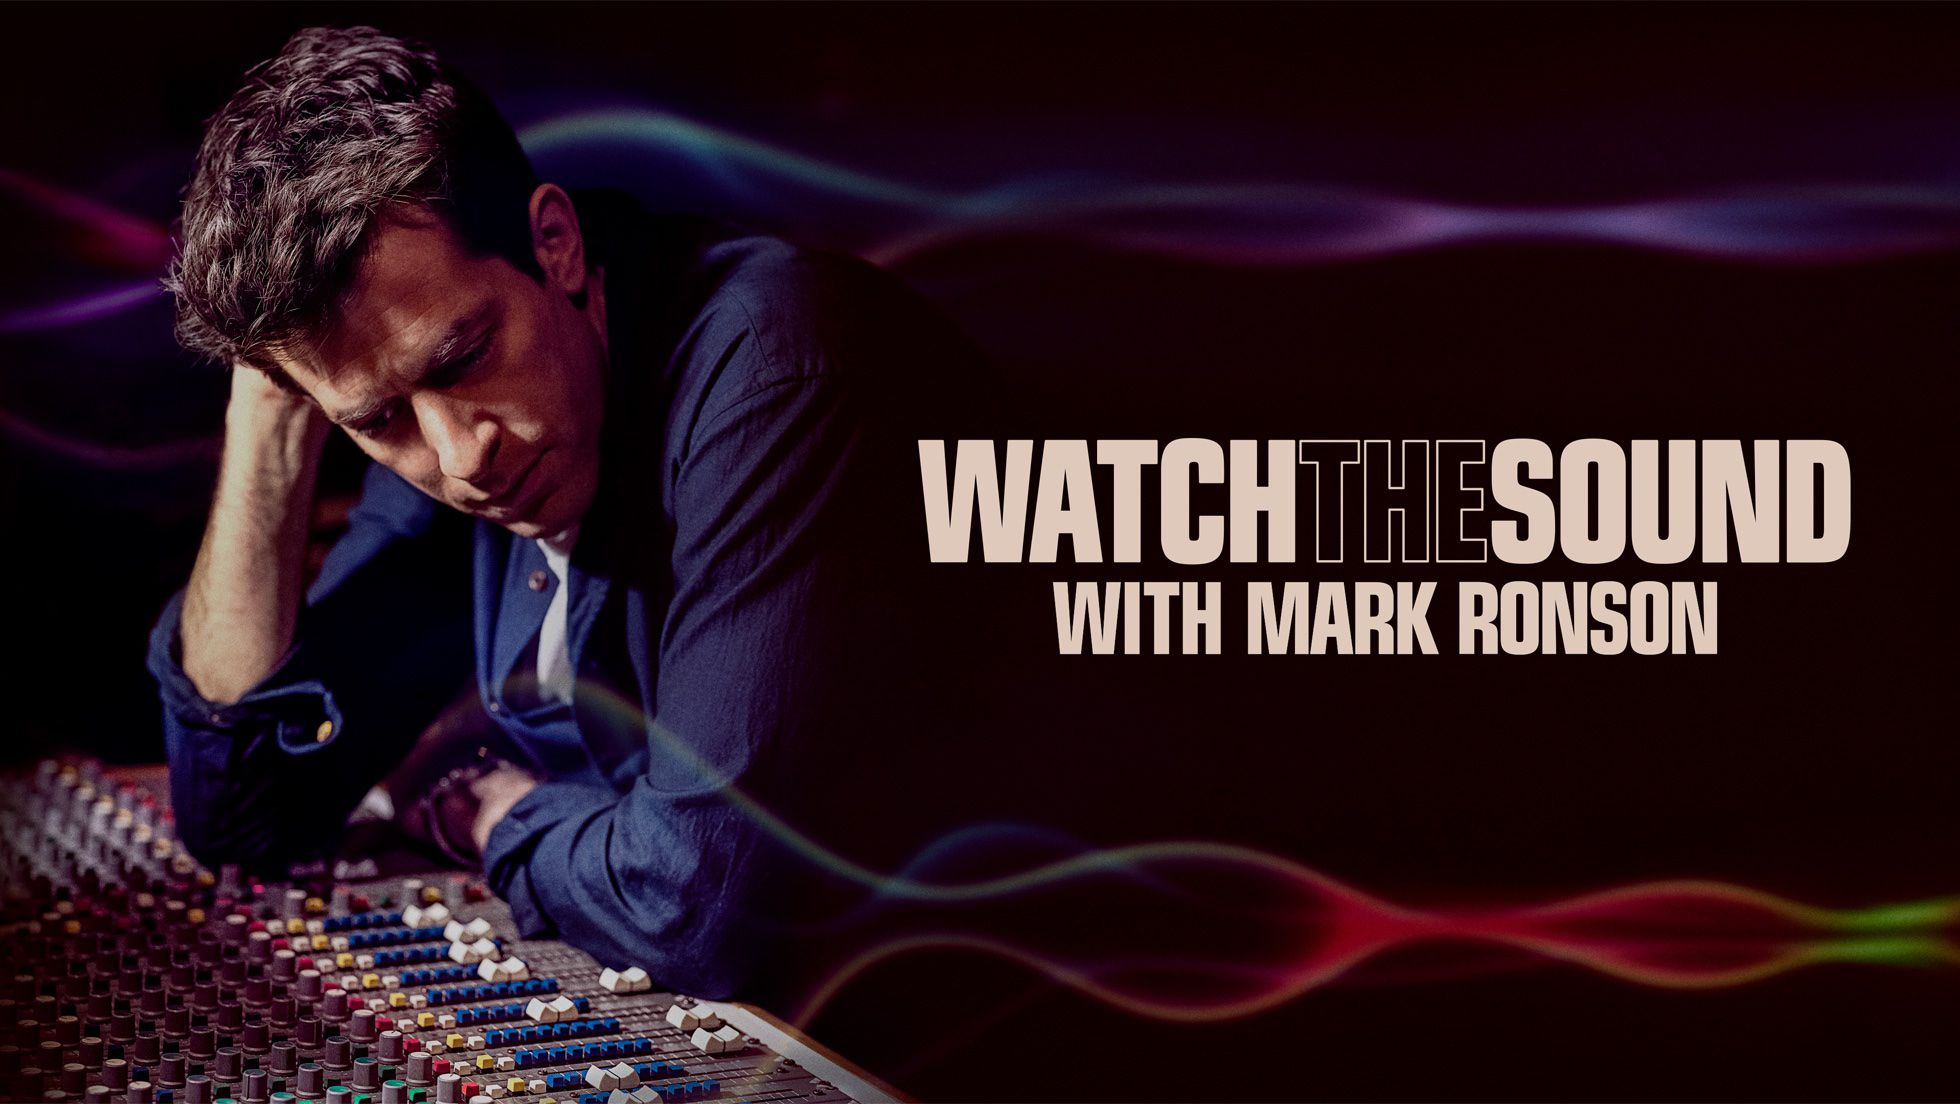 photo of Apple Shares Trailer for Docuseries 'Watch the Sound with Mark Ronson' image